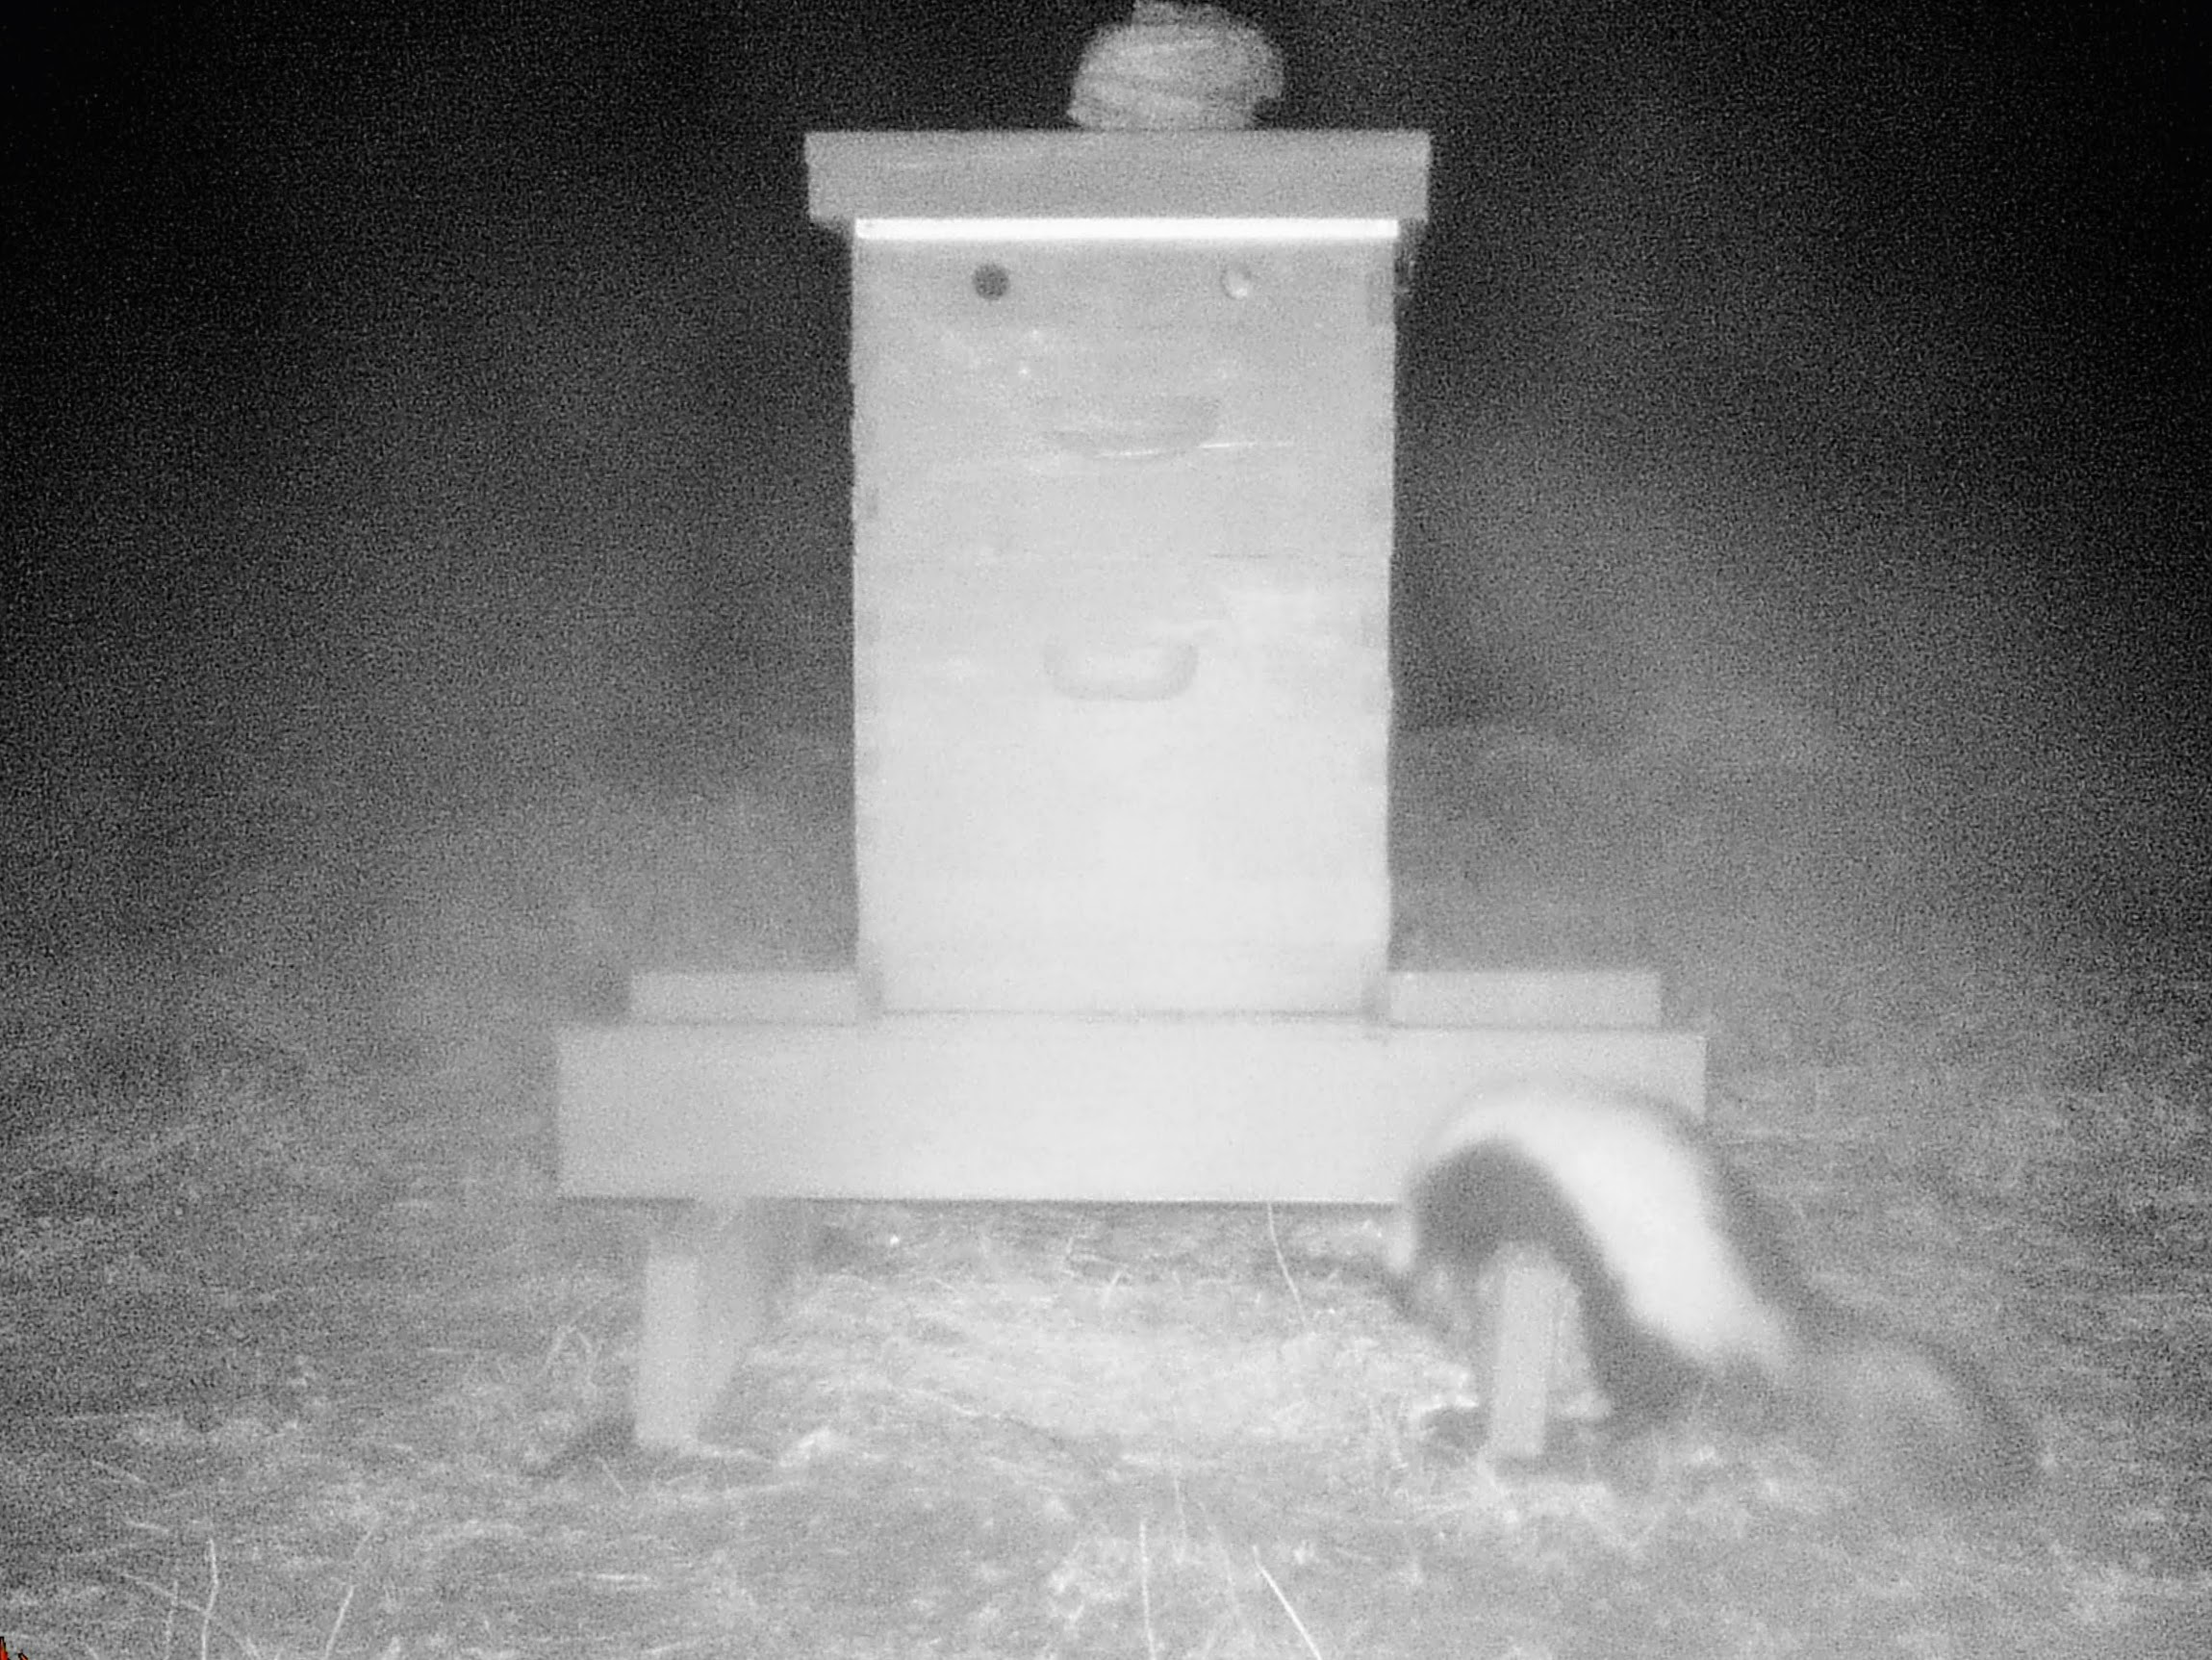 Skunk at a honey bee hive